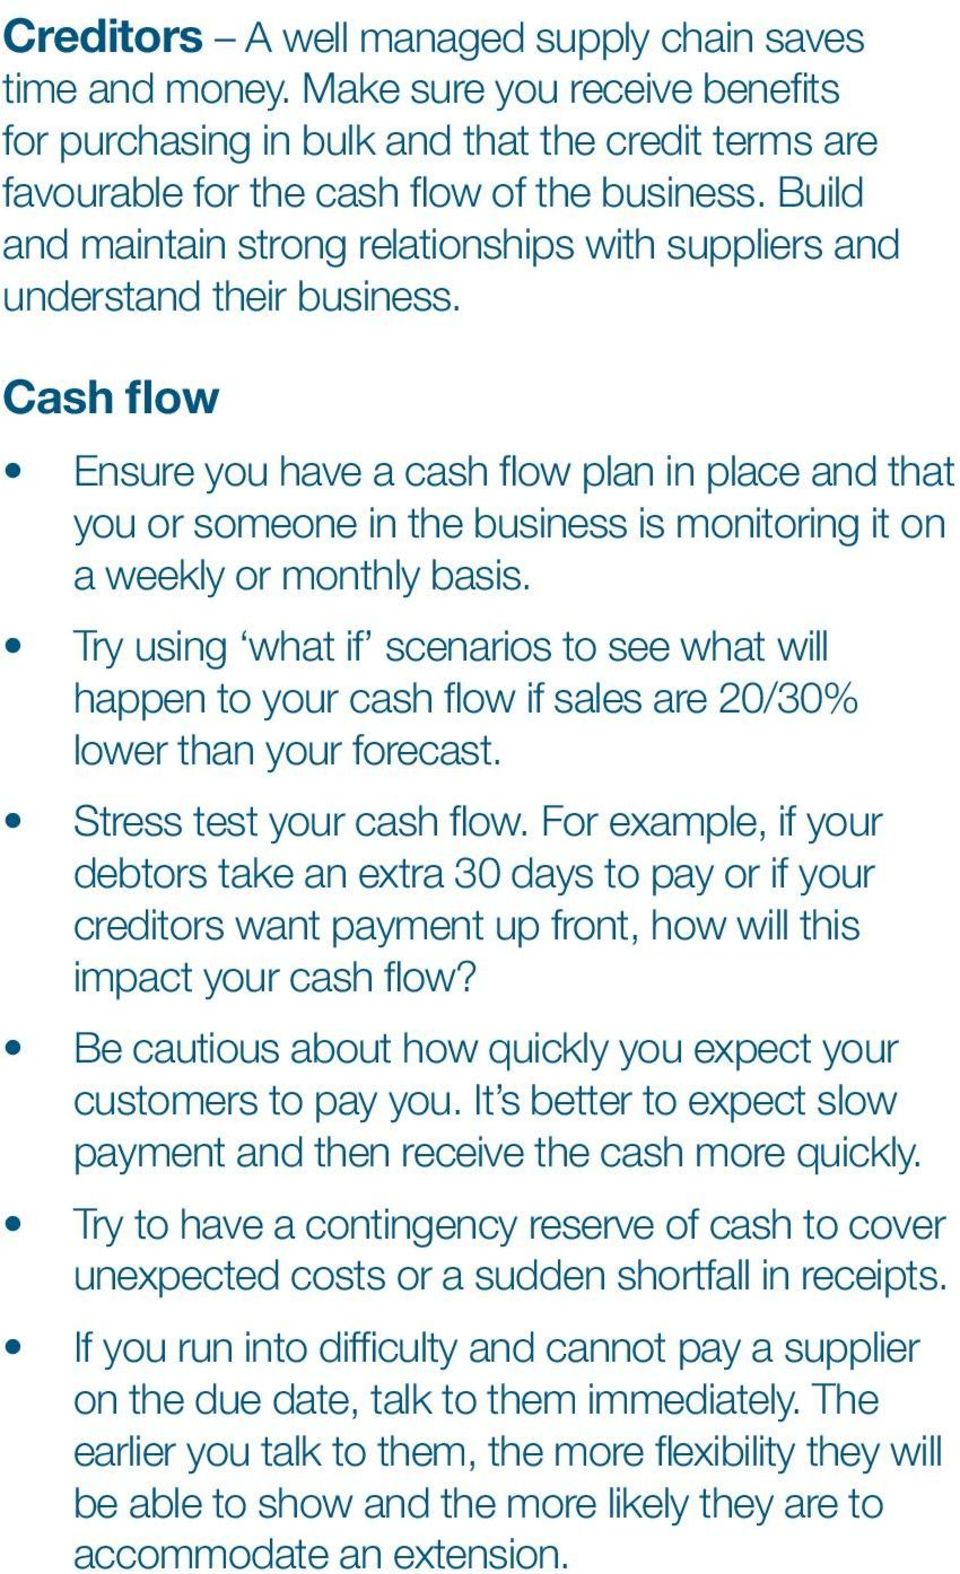 Cash flow Ensure you have a cash flow plan in place and that you or someone in the business is monitoring it on a weekly or monthly basis.